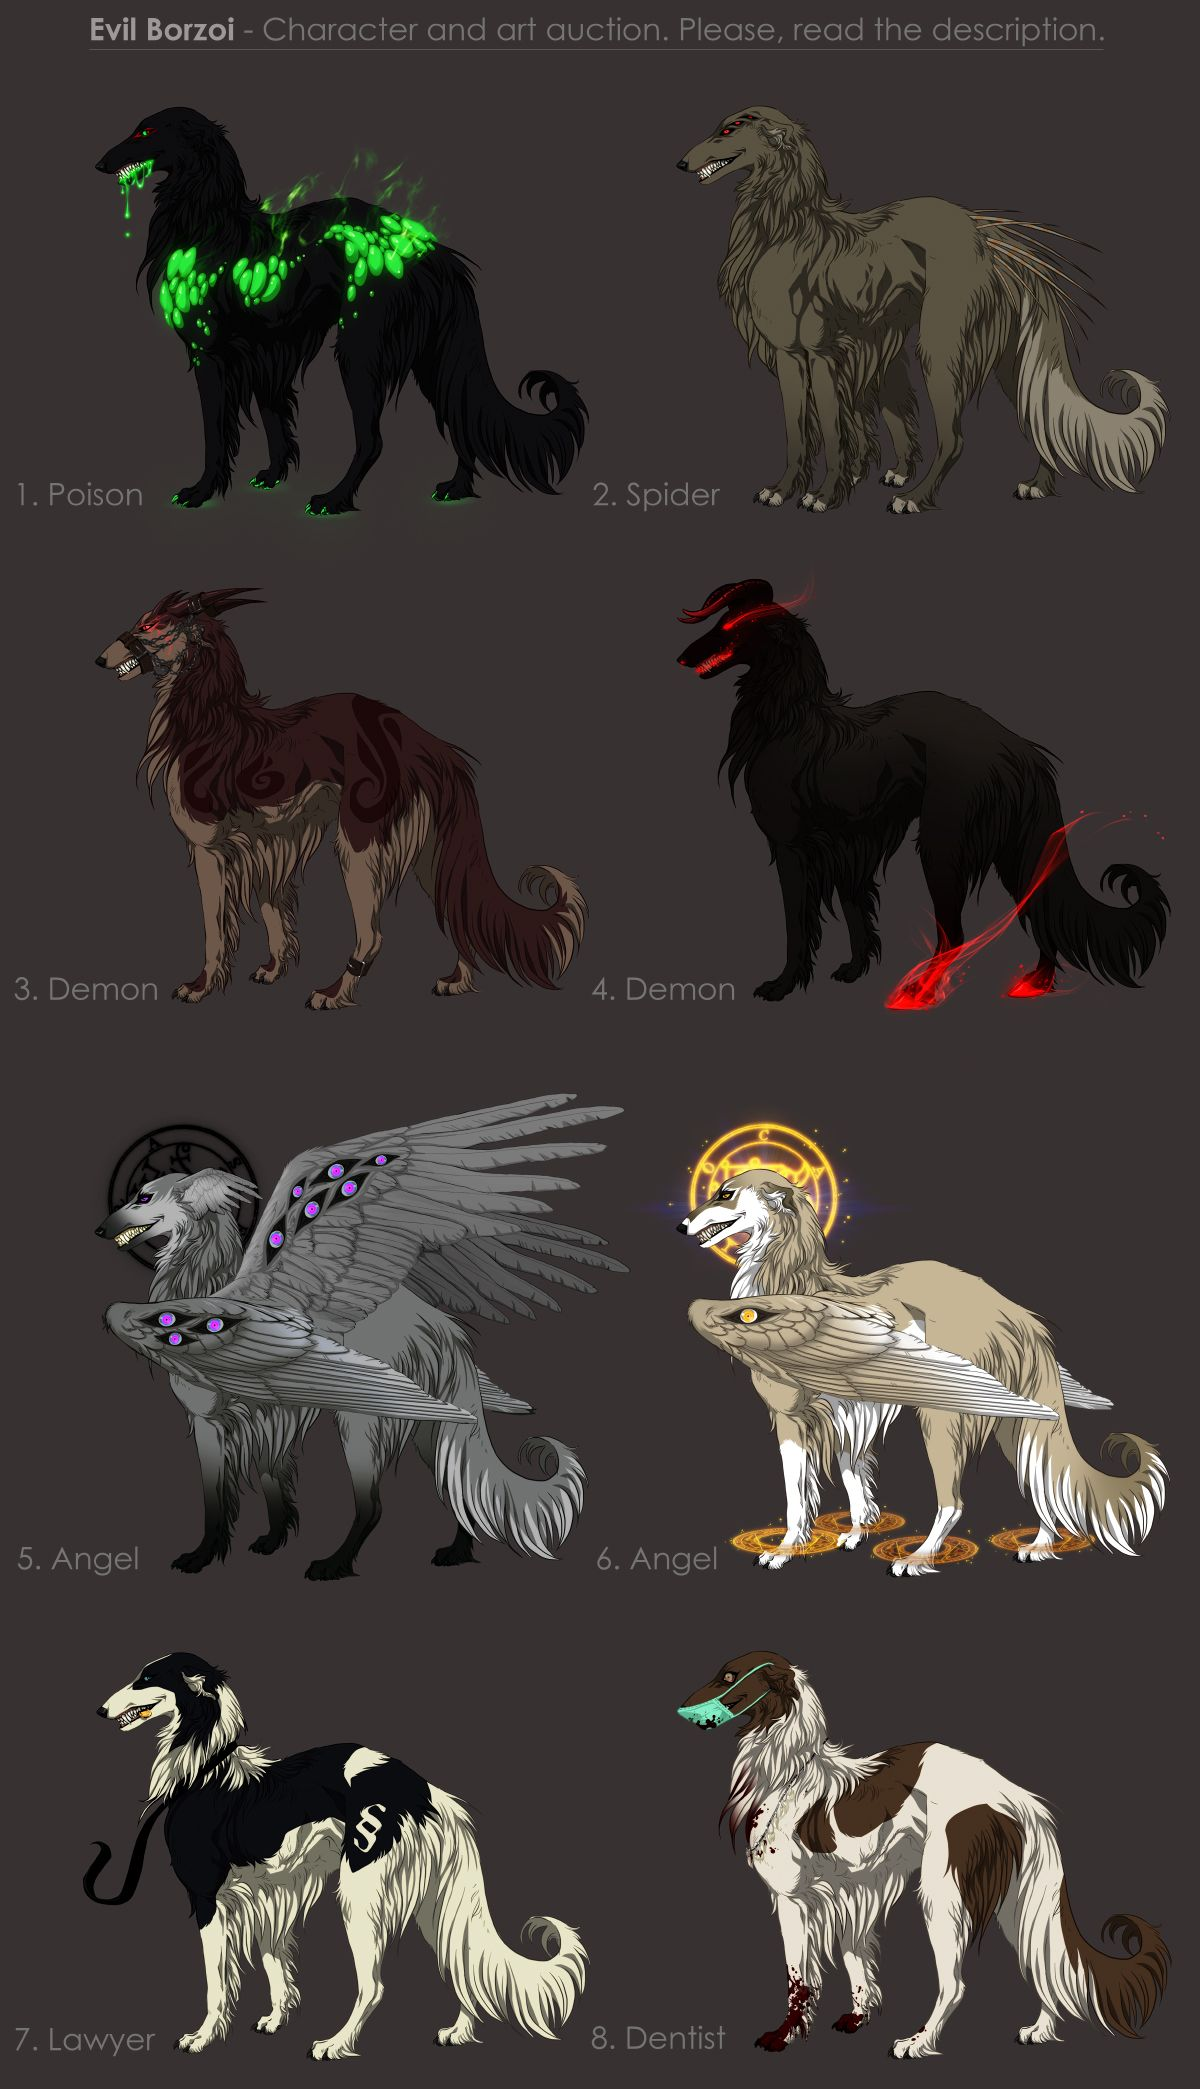 evil mythical creatures to write about